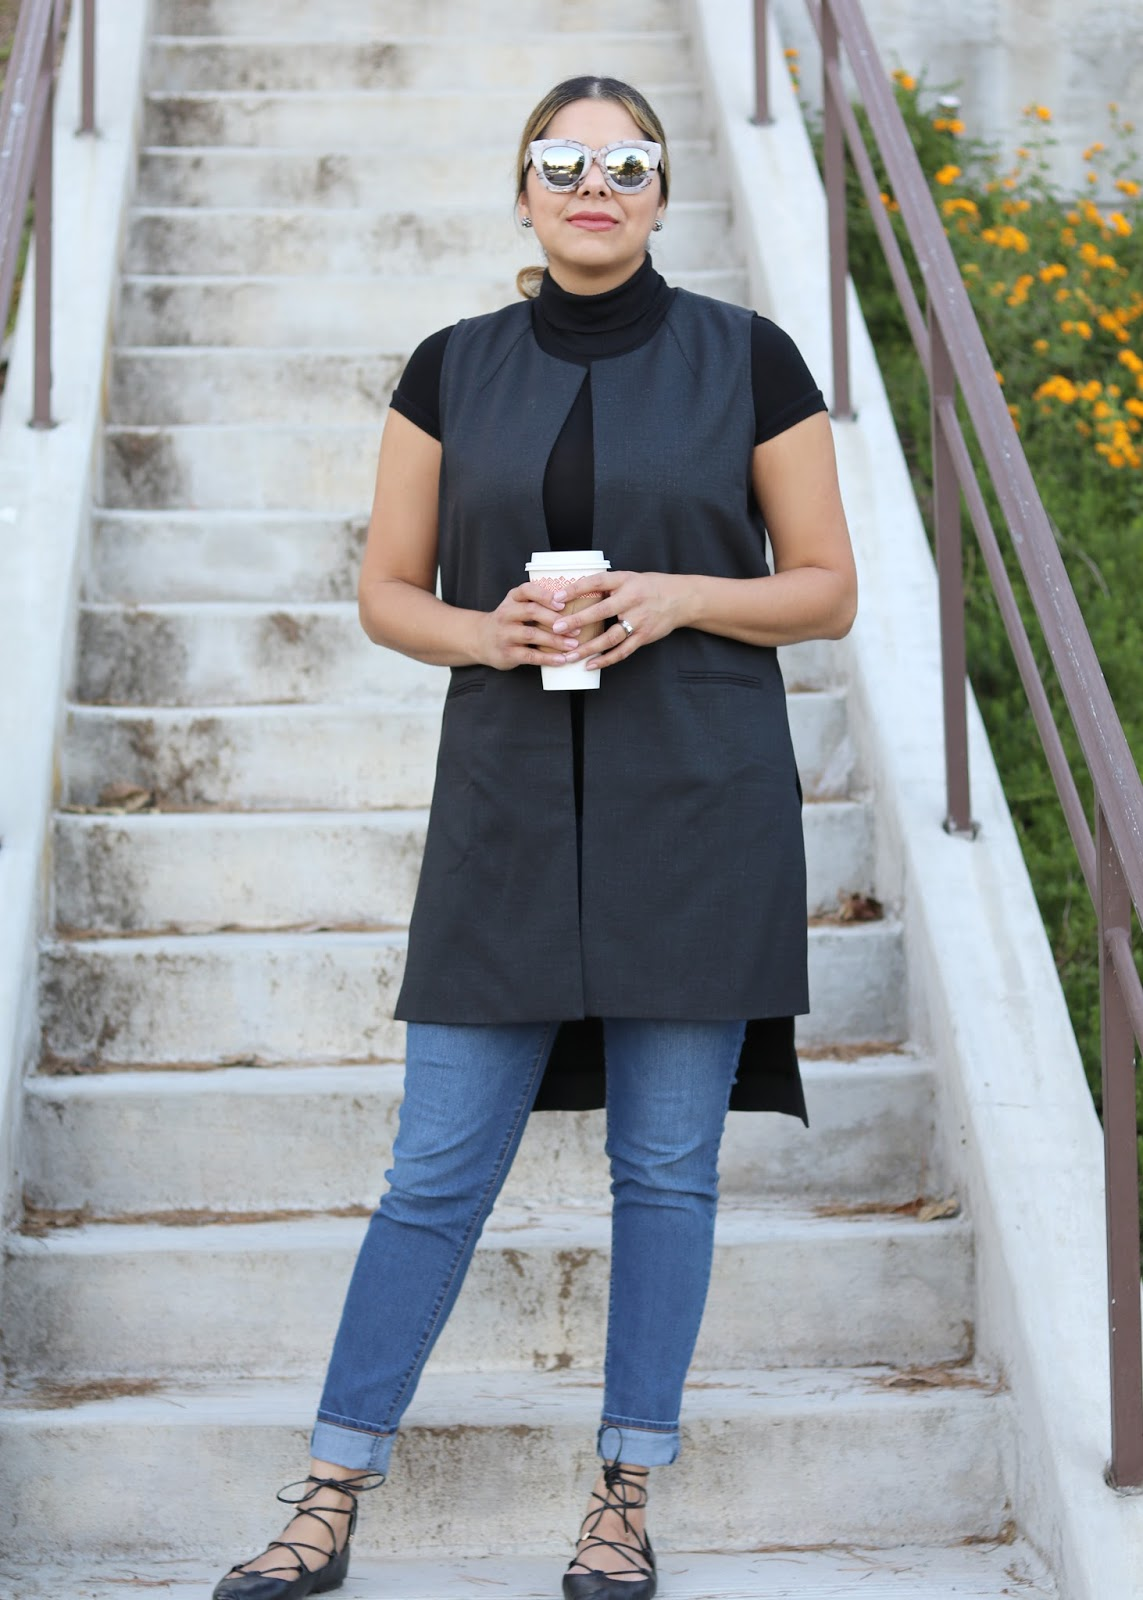 quay sugar and spice sunglasses, quay blogger, coffee date outfit, black turtleneck outfit